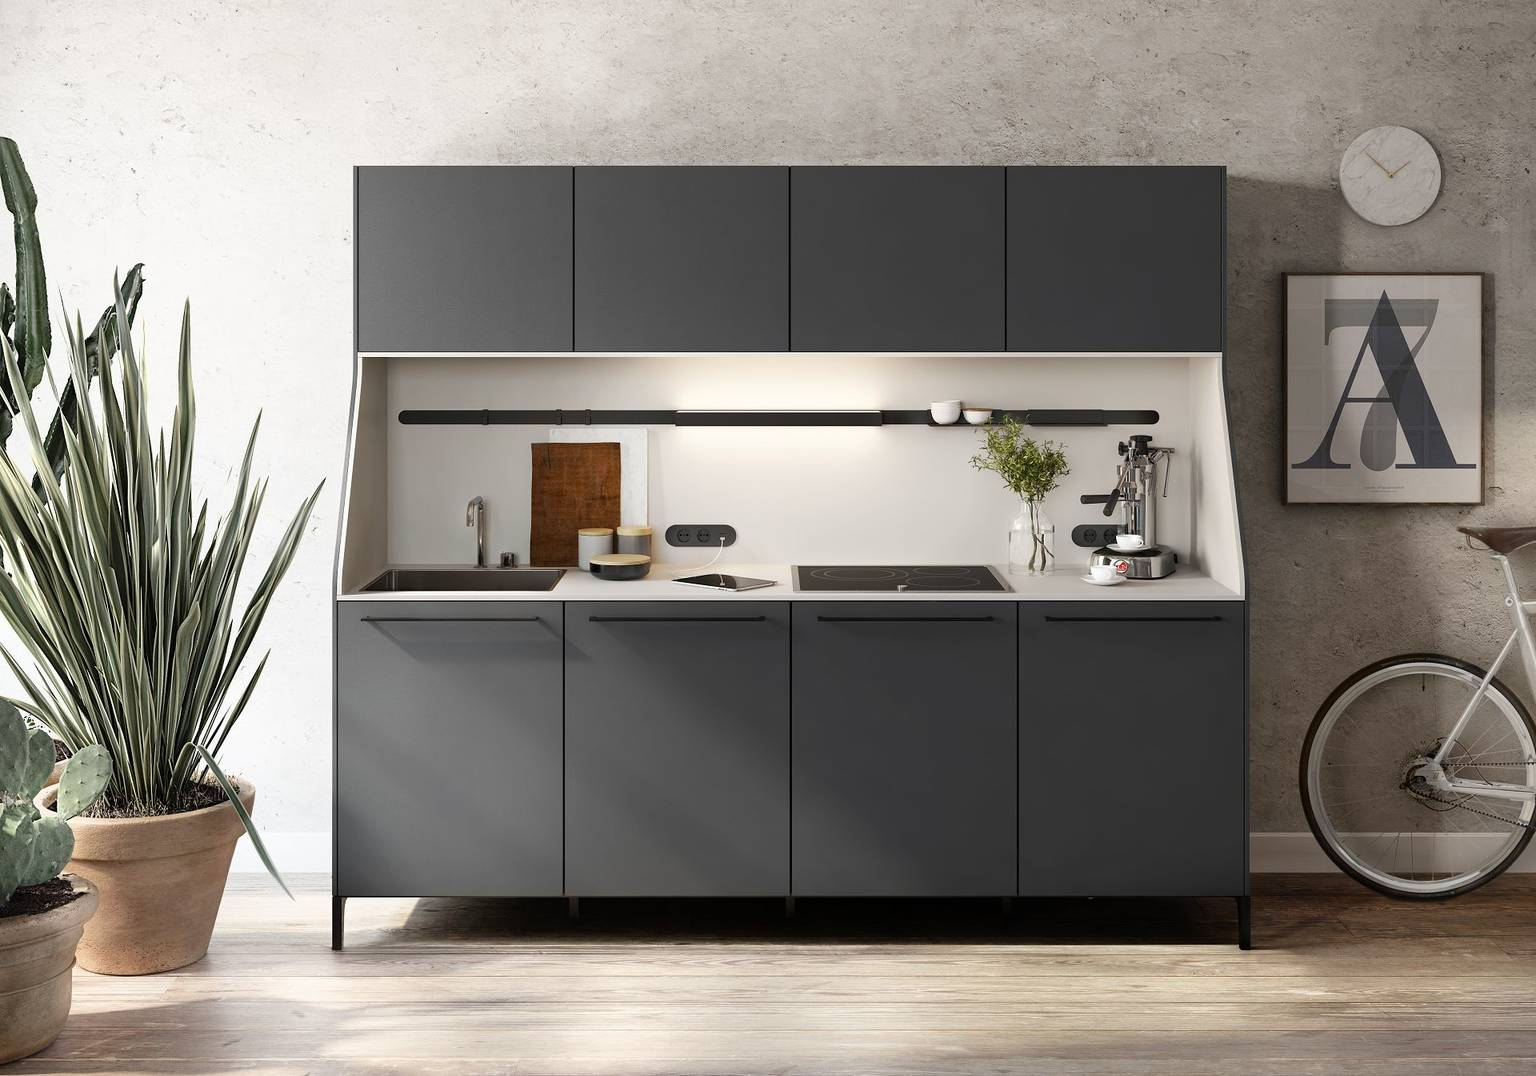 SieMatic 29 kitchen sideboard from the Urban style collection in graphite grey with sink and stovetop